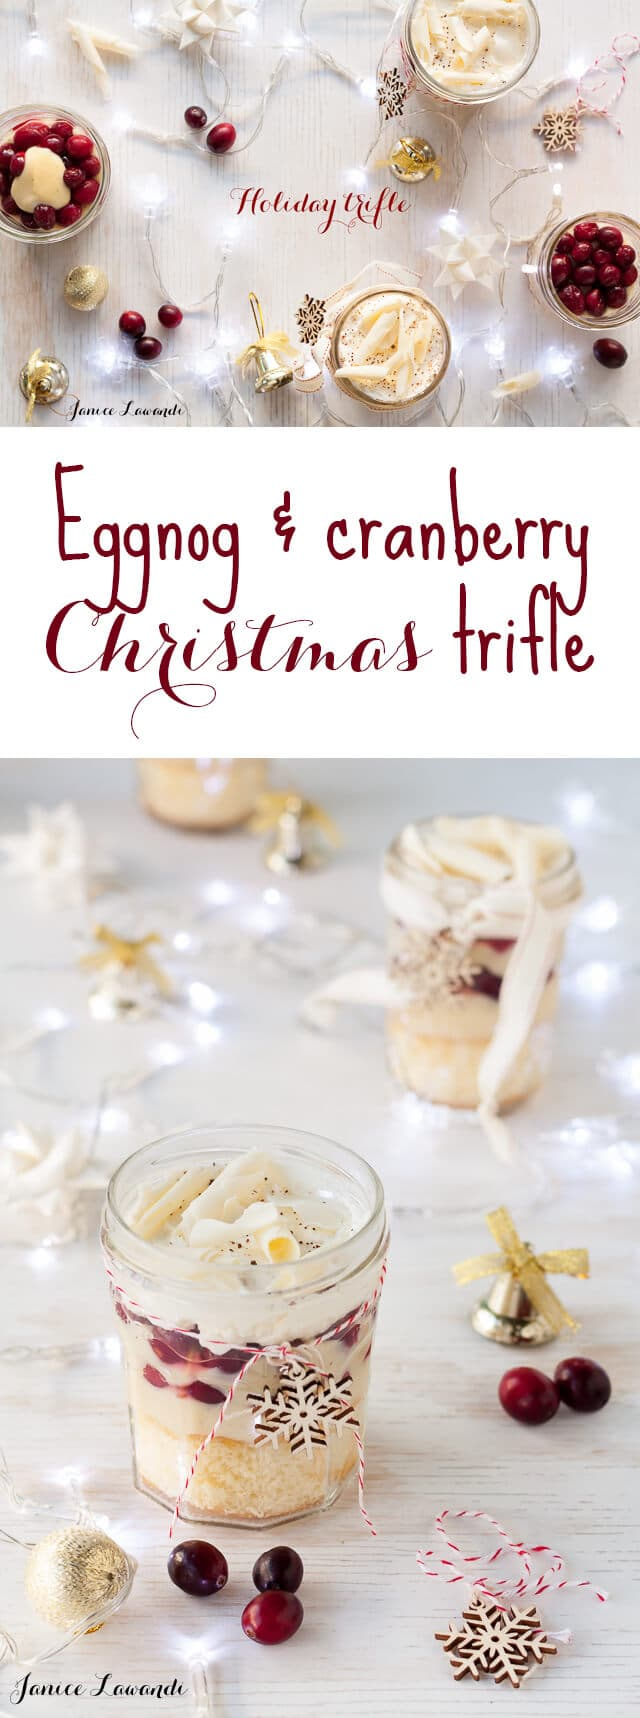 This eggnog & cranberry Christmas trifle is the perfect holiday dessert and you can make it ahead! Layers of homemade spongecake, eggnog pastry cream, and poached cranberries make quite the festive dessert.